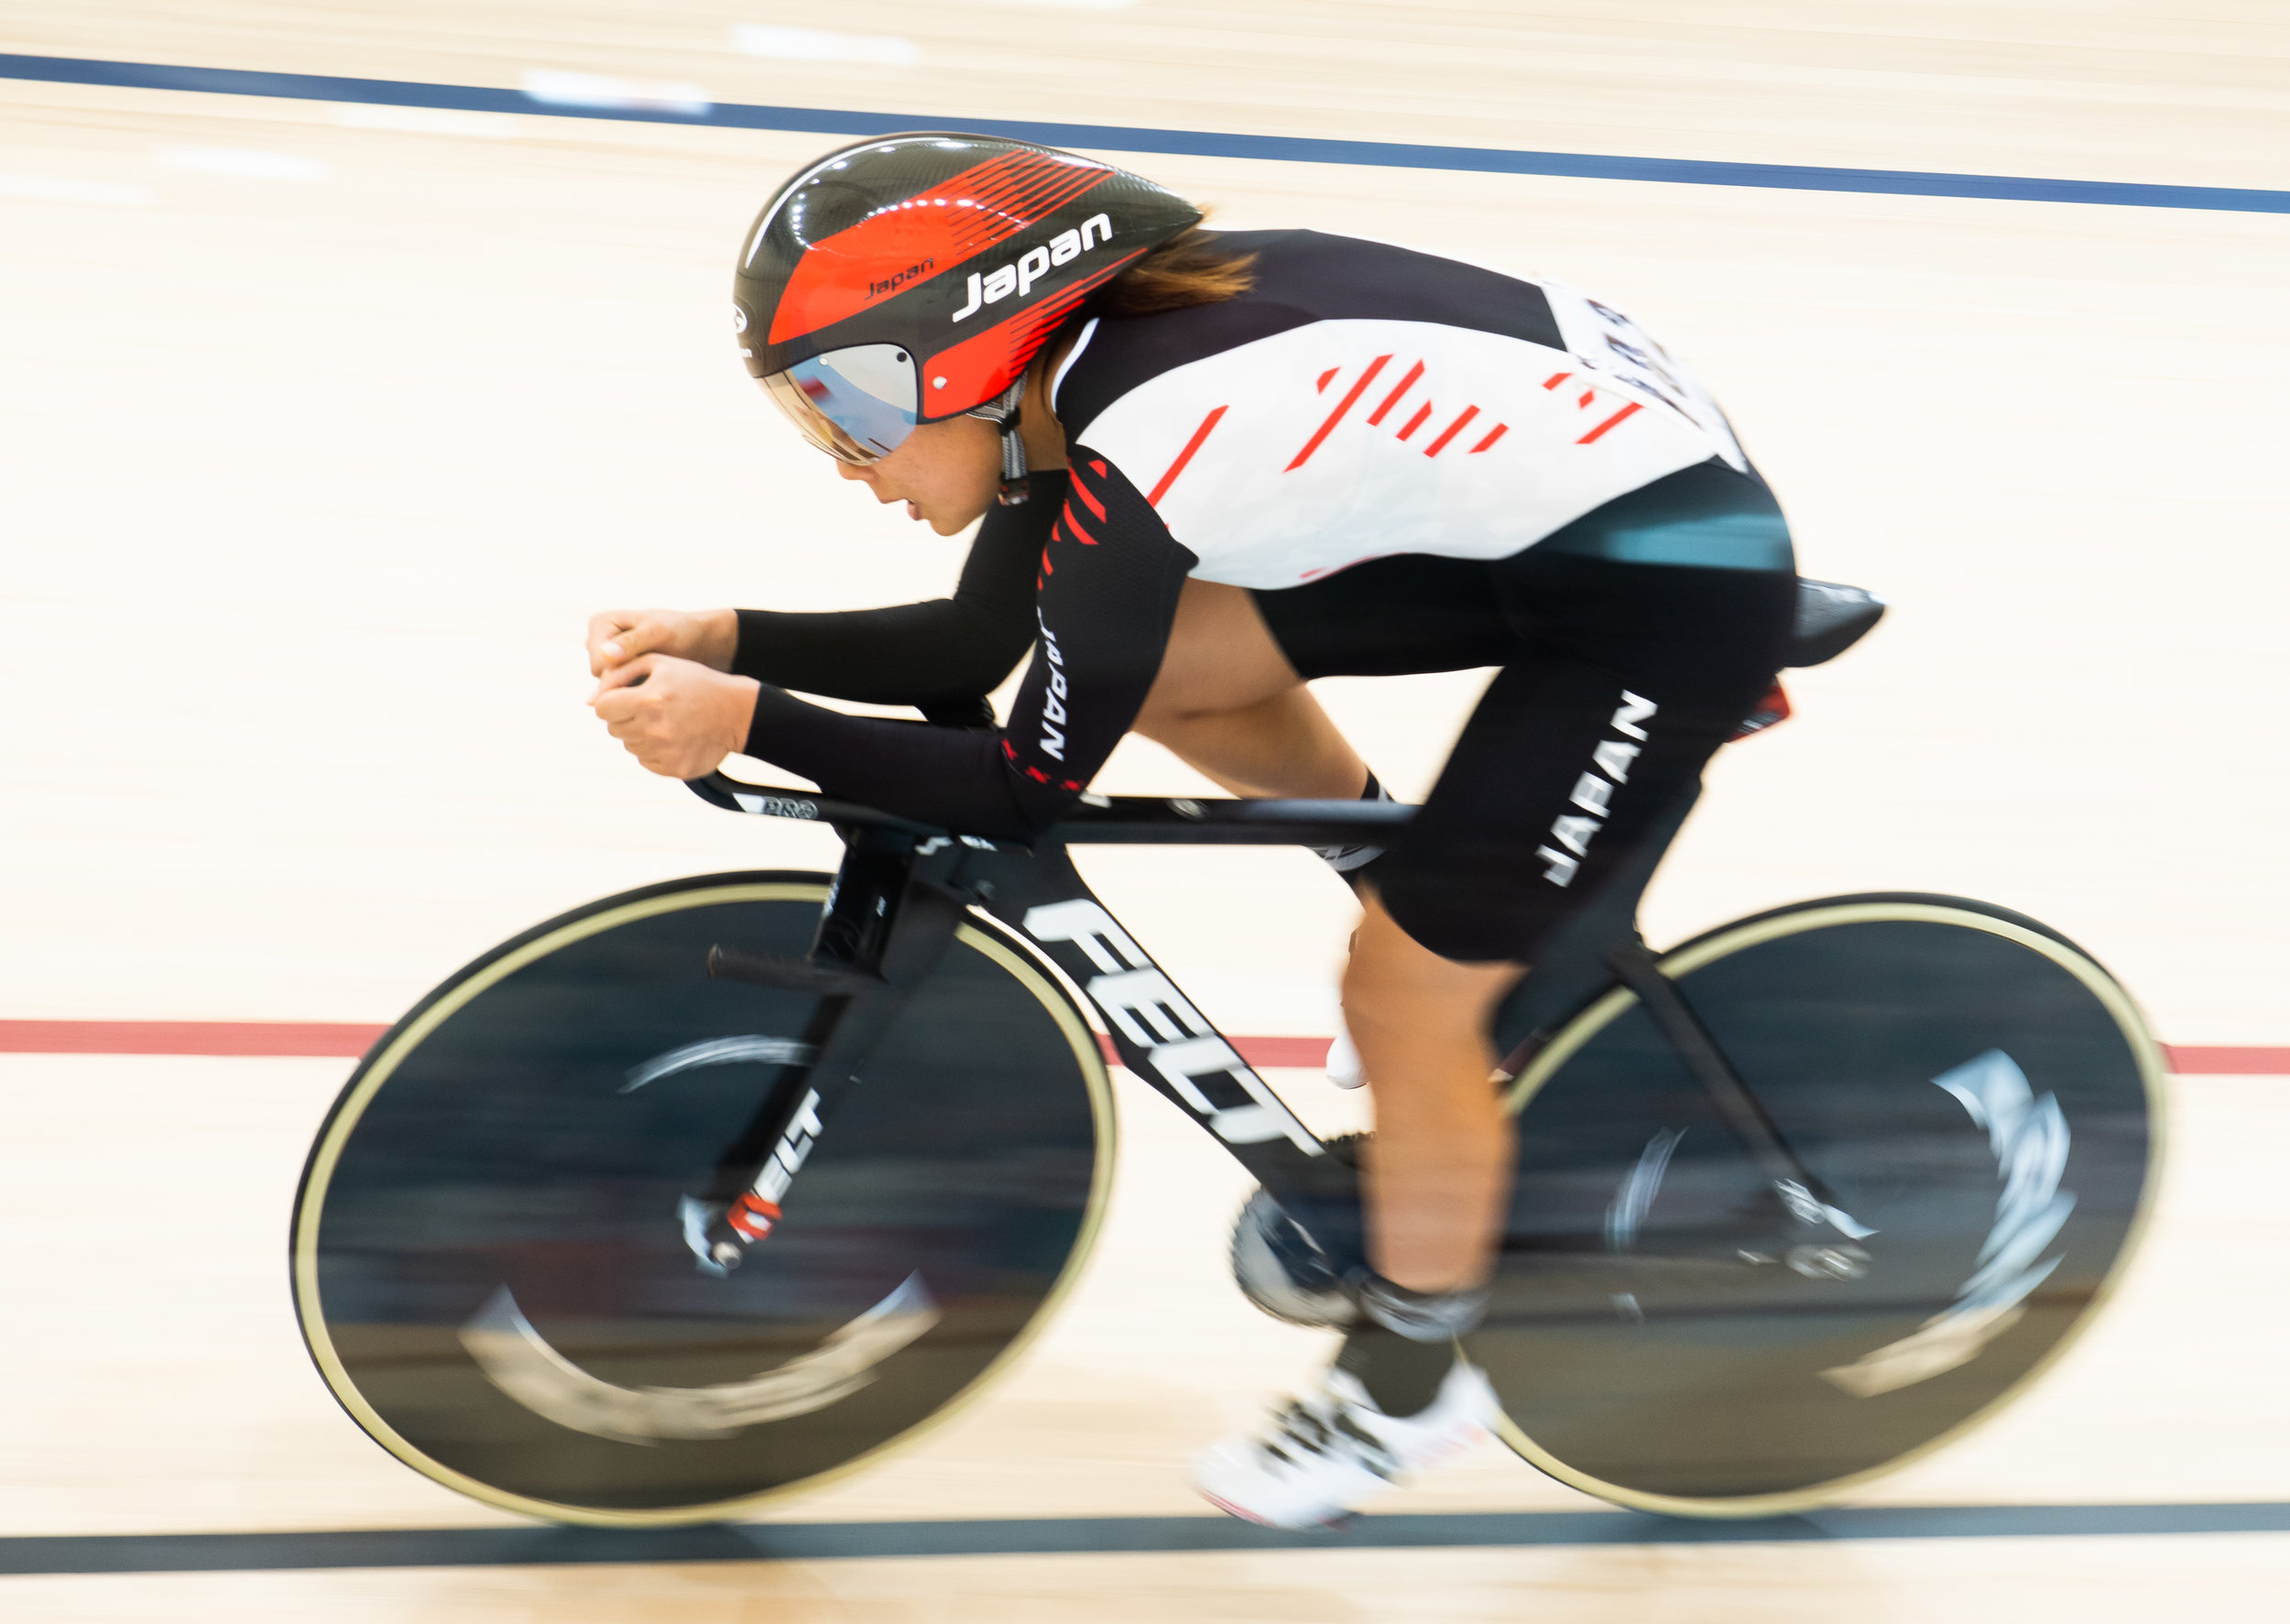 A Japanese cyclist during the Asian Games at the Jakarta Velodrome.